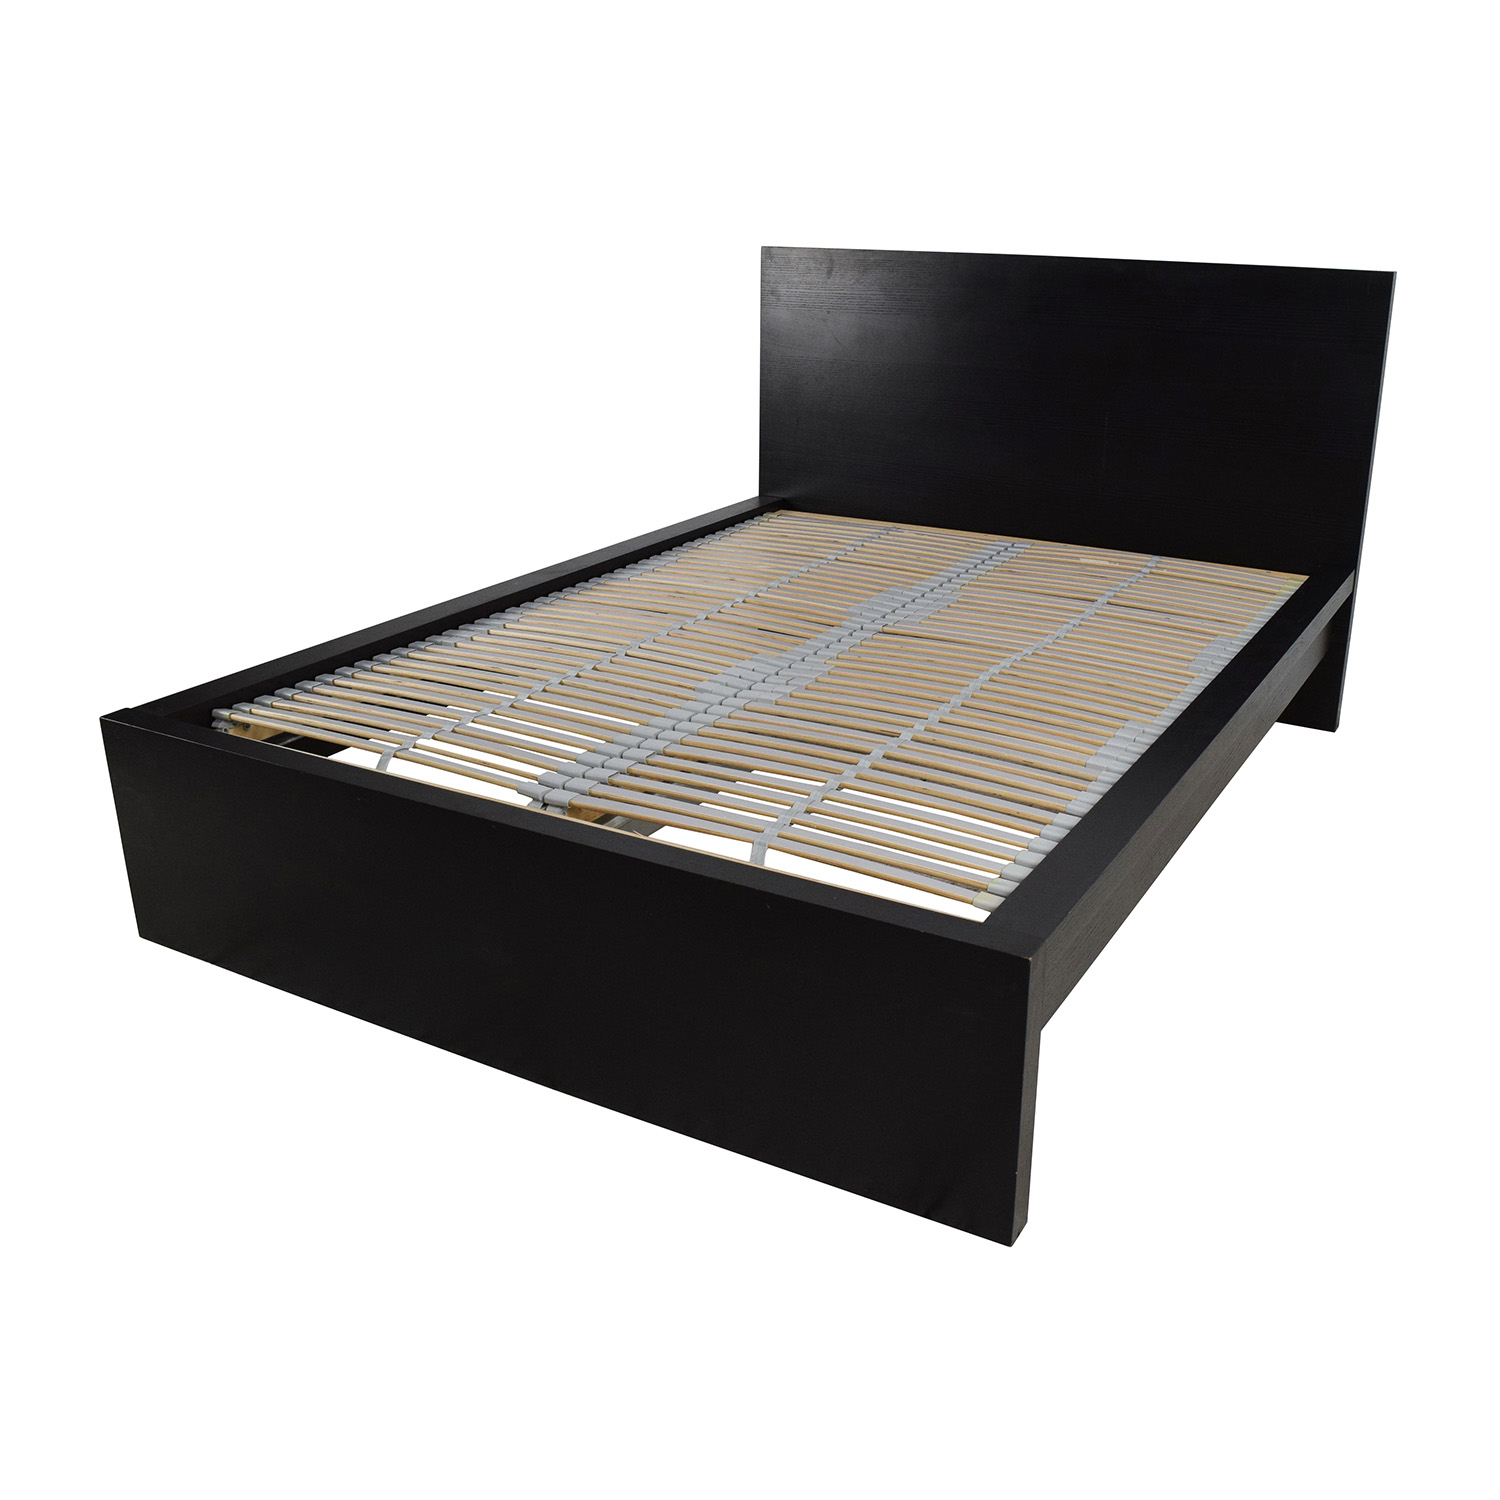 Ikea Bed Slats Beds Bed Frames Ikea 77% Off - Ikea Ikea Full Bed Frame With Adjustable Slats